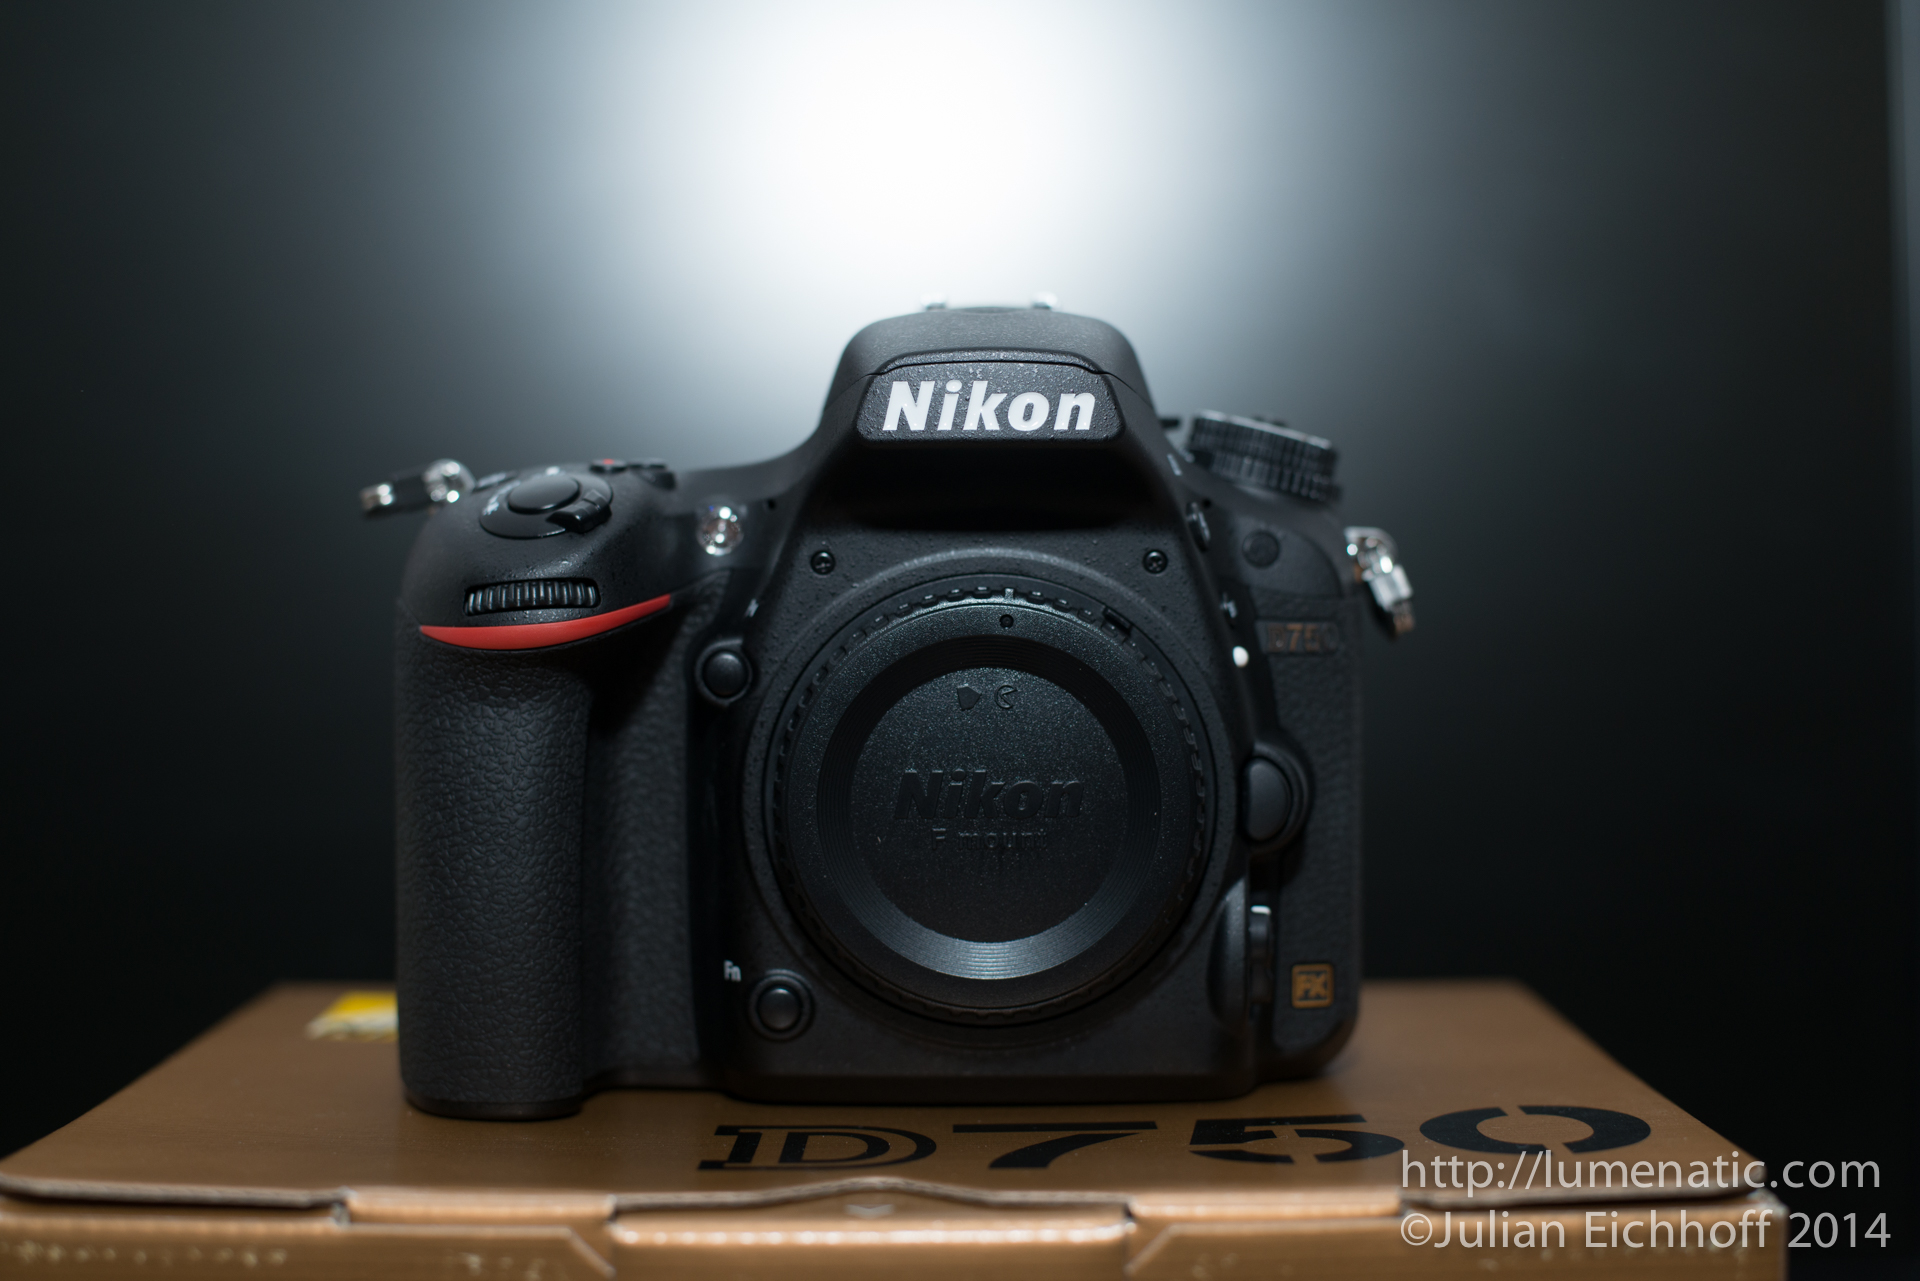 The Nikon D750 has arrived